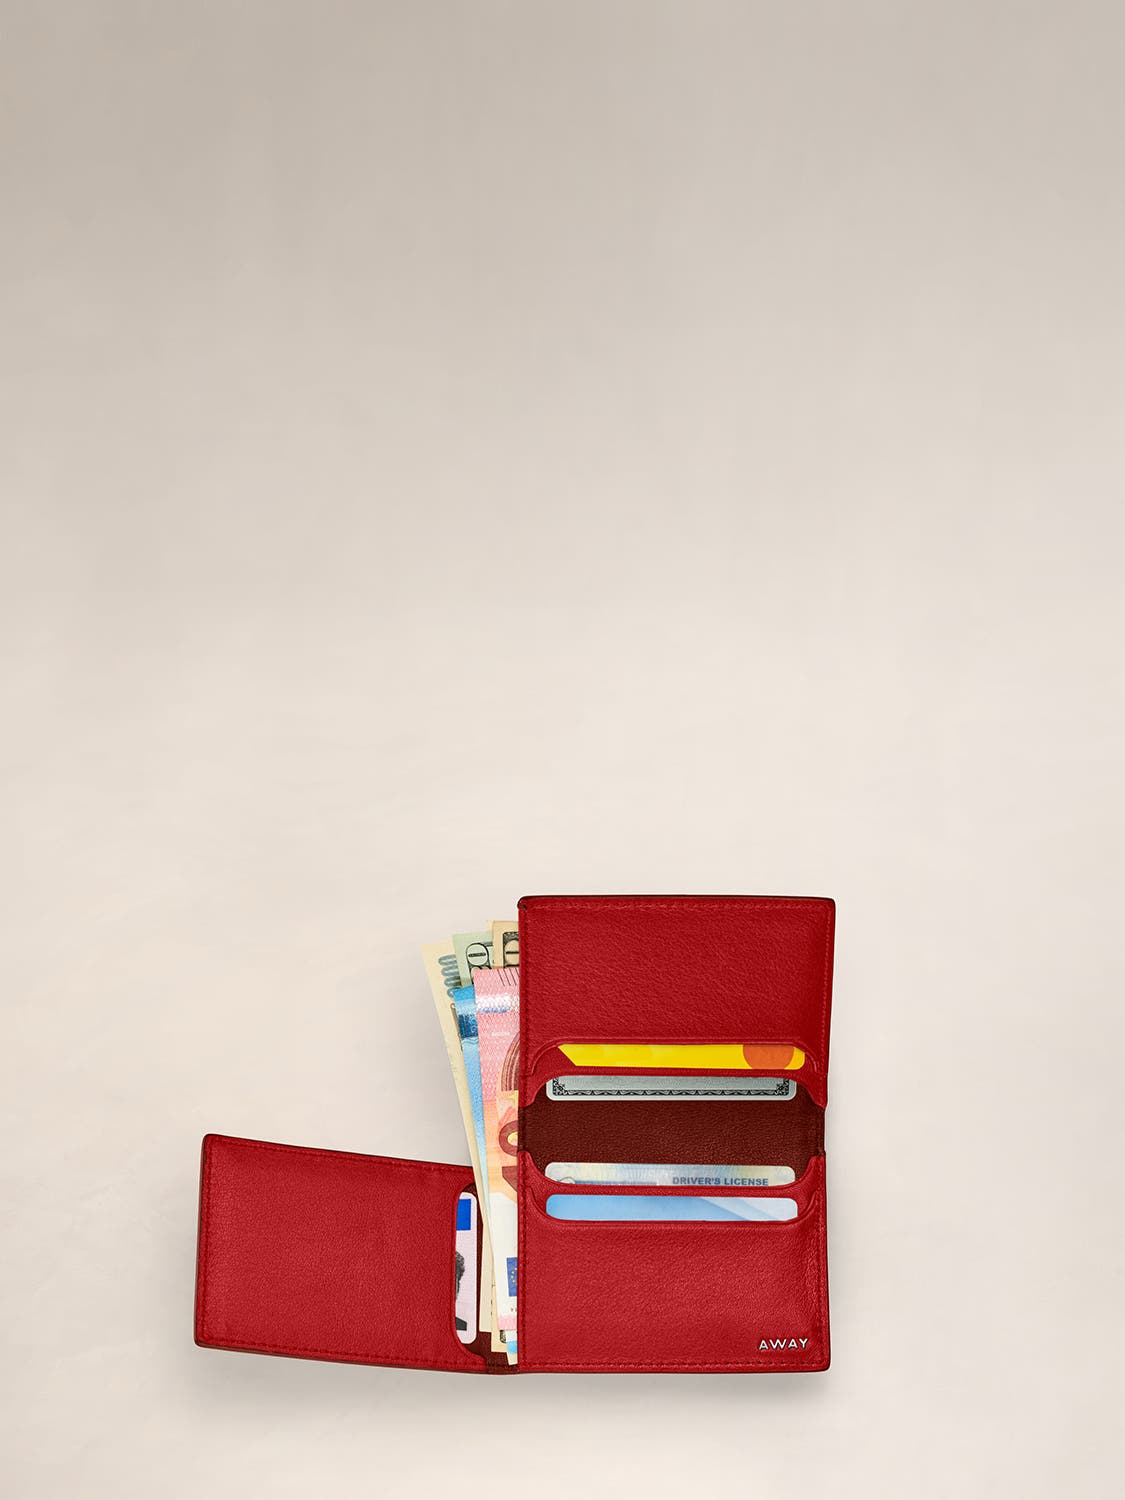 An open view of a chestnut L Fold wallet with cards and cash inserted in various pockets.